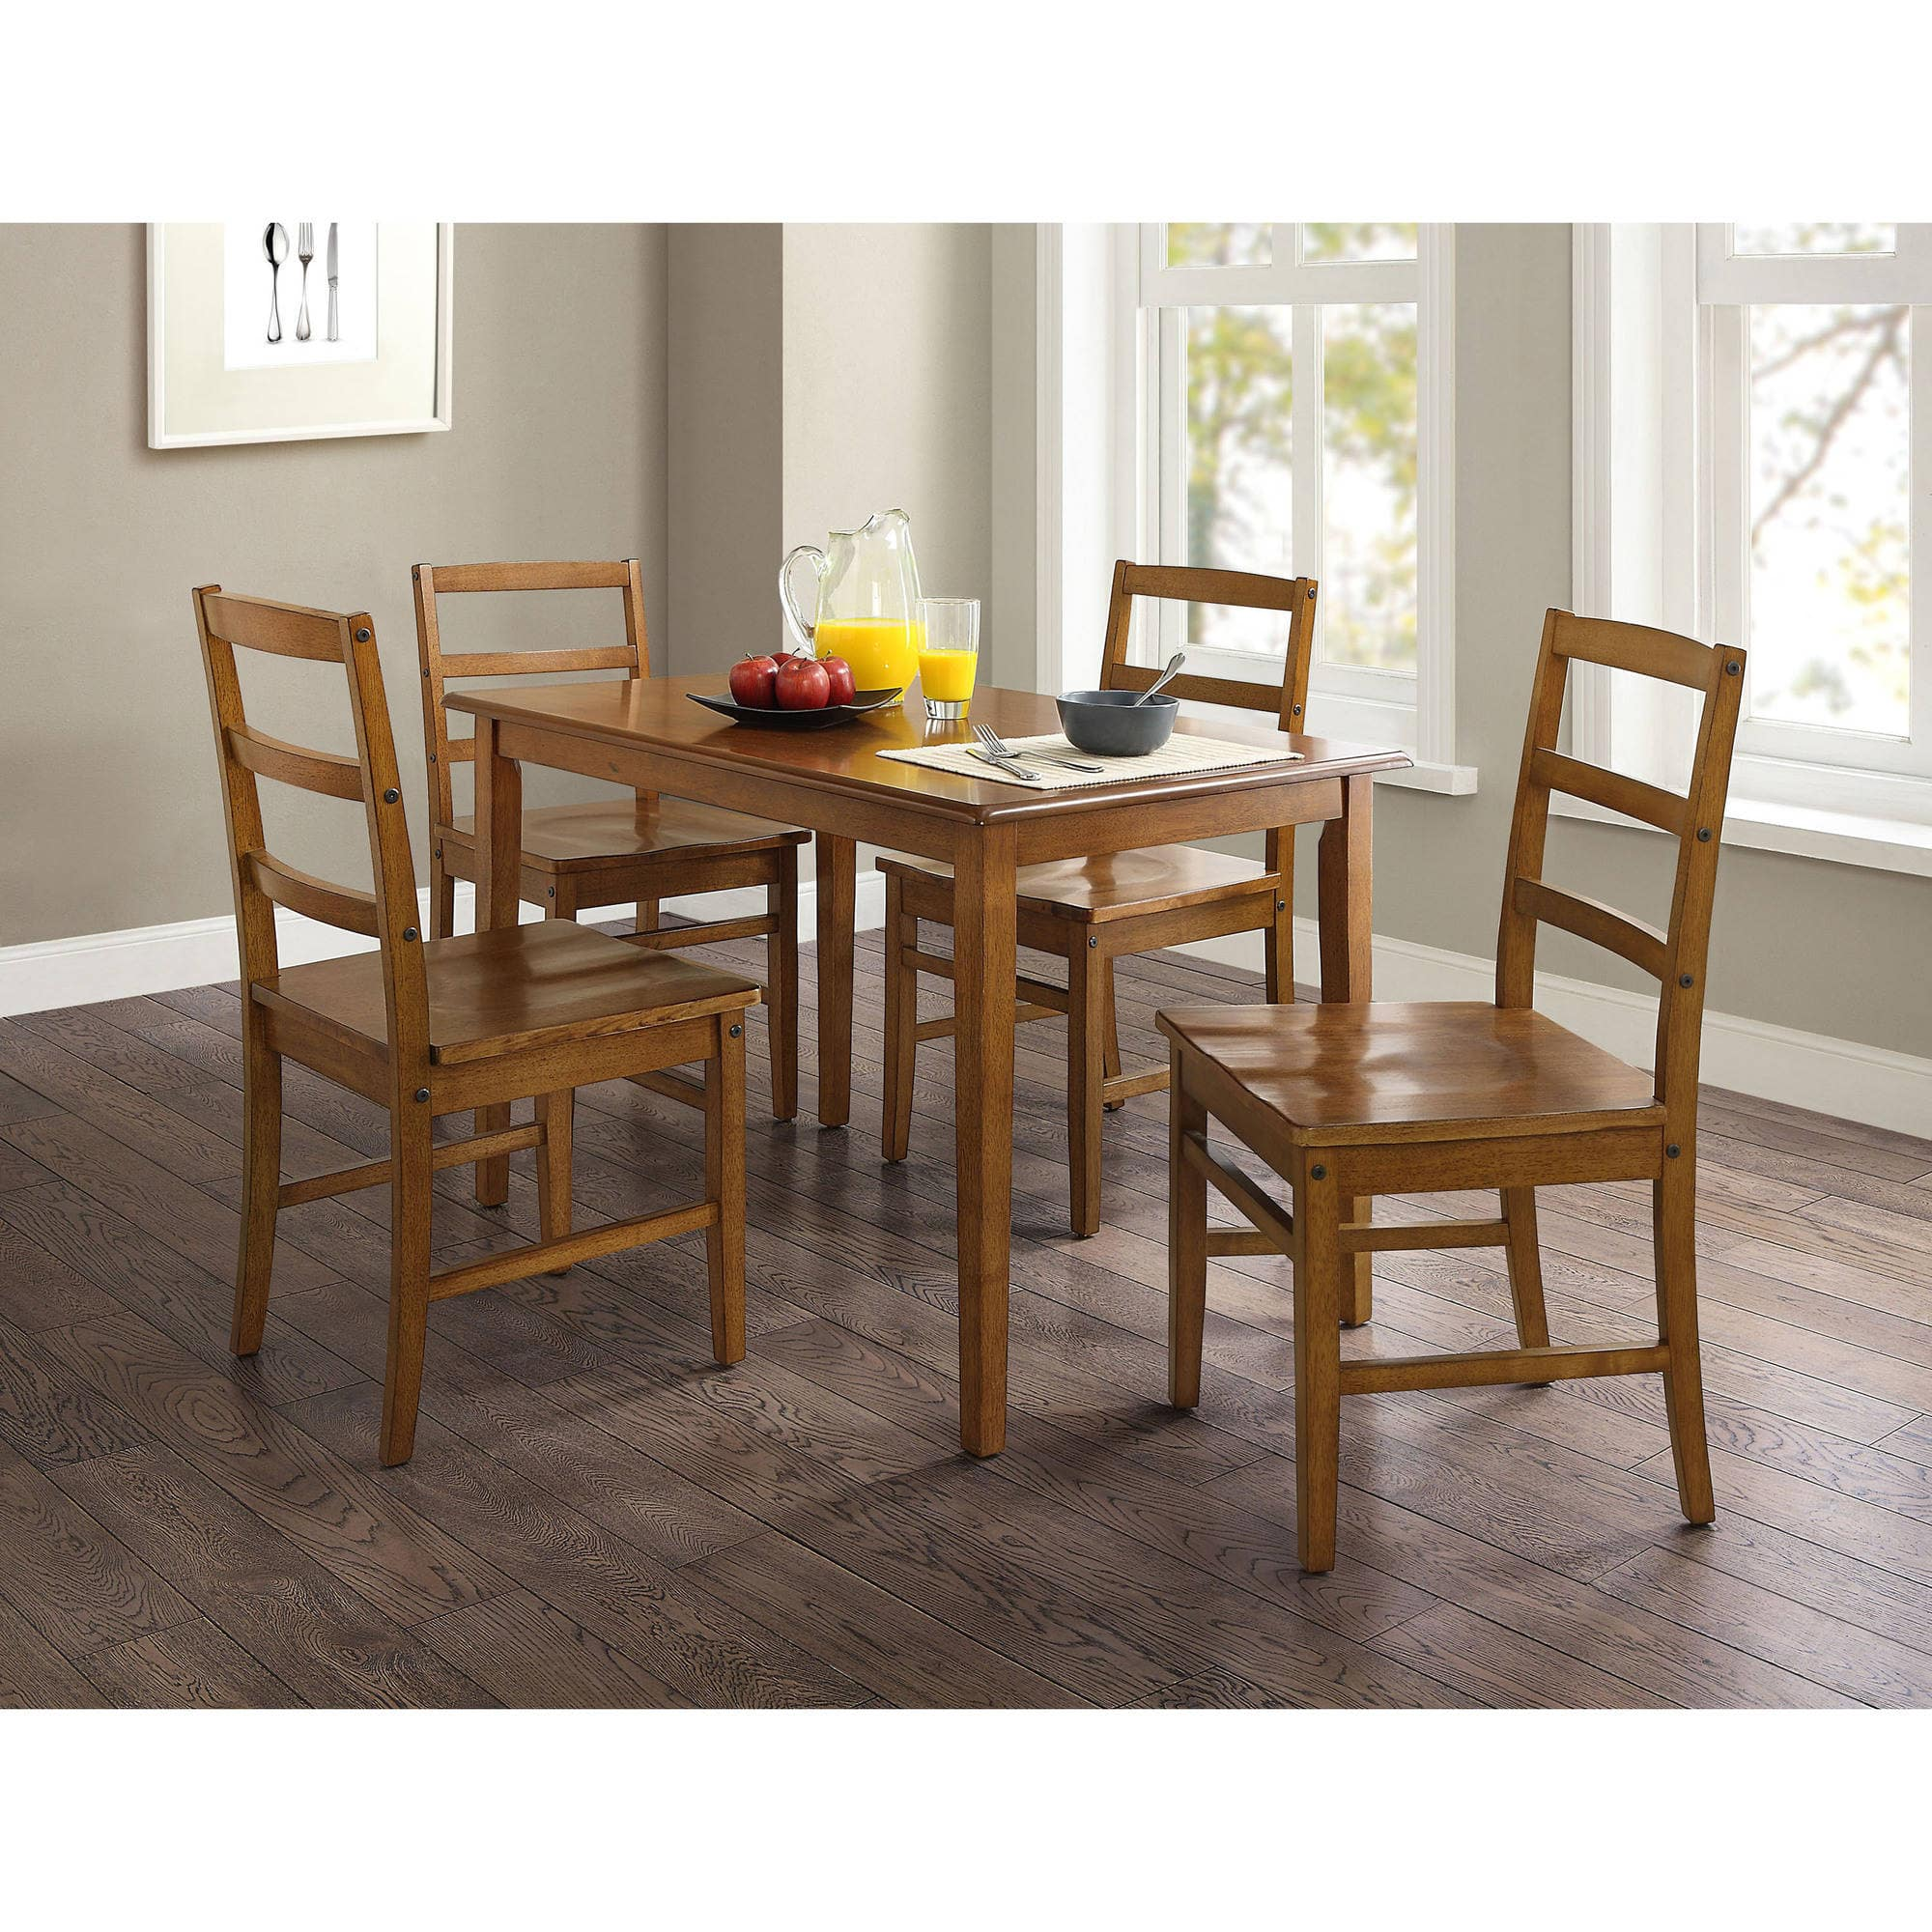 5 Piece Mainstays Dining Set Walnut Finish Slickdealsnet